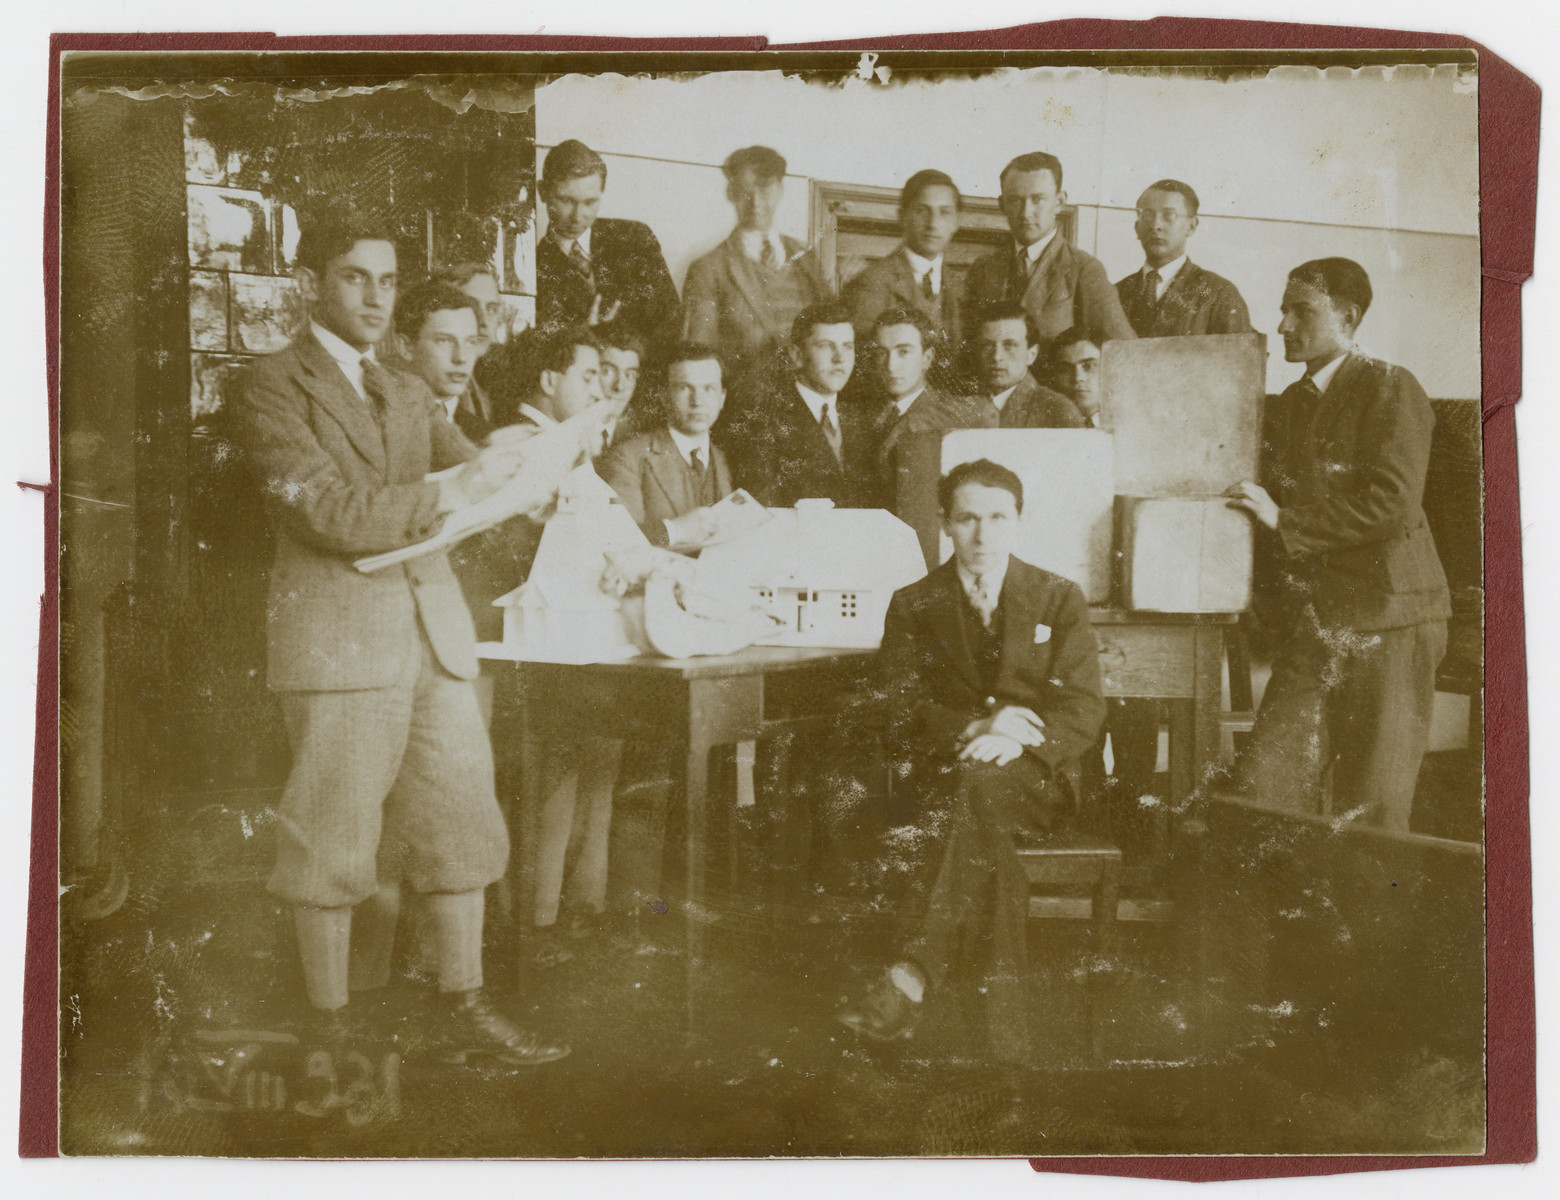 Bruno Schulz teaches an art class in prewar Drohobycz.